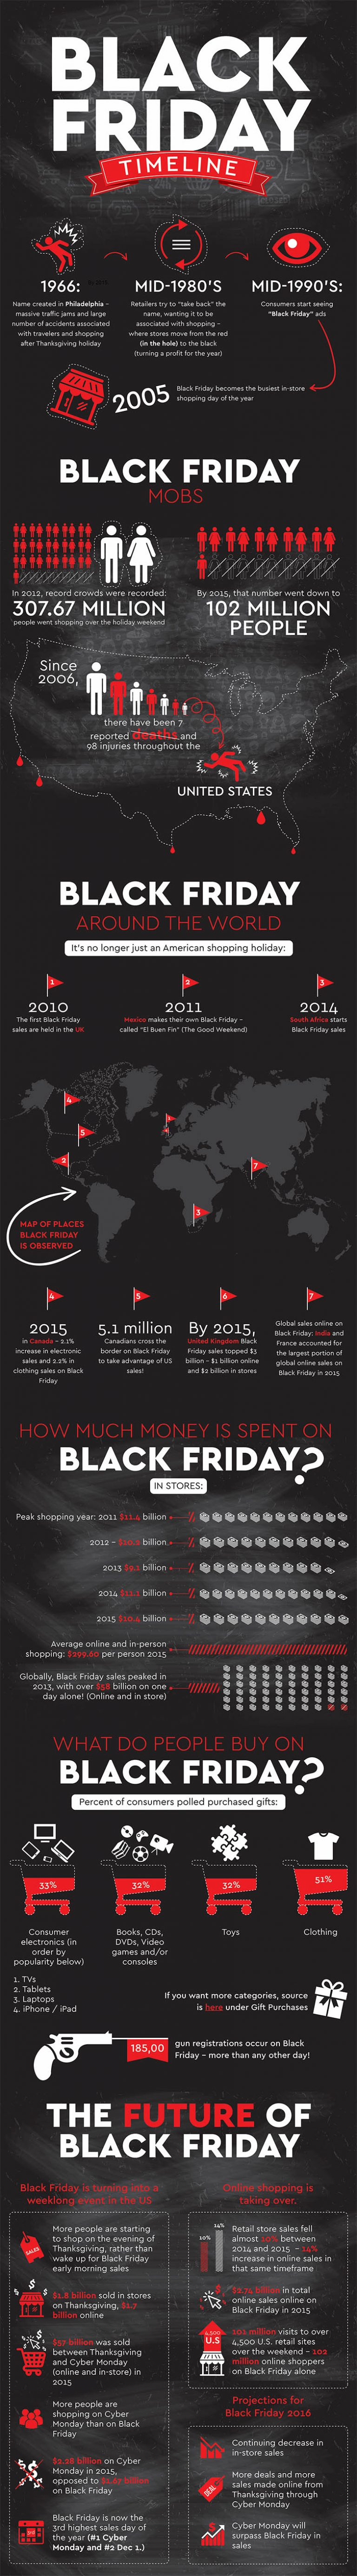 Black Friday Facts infographic